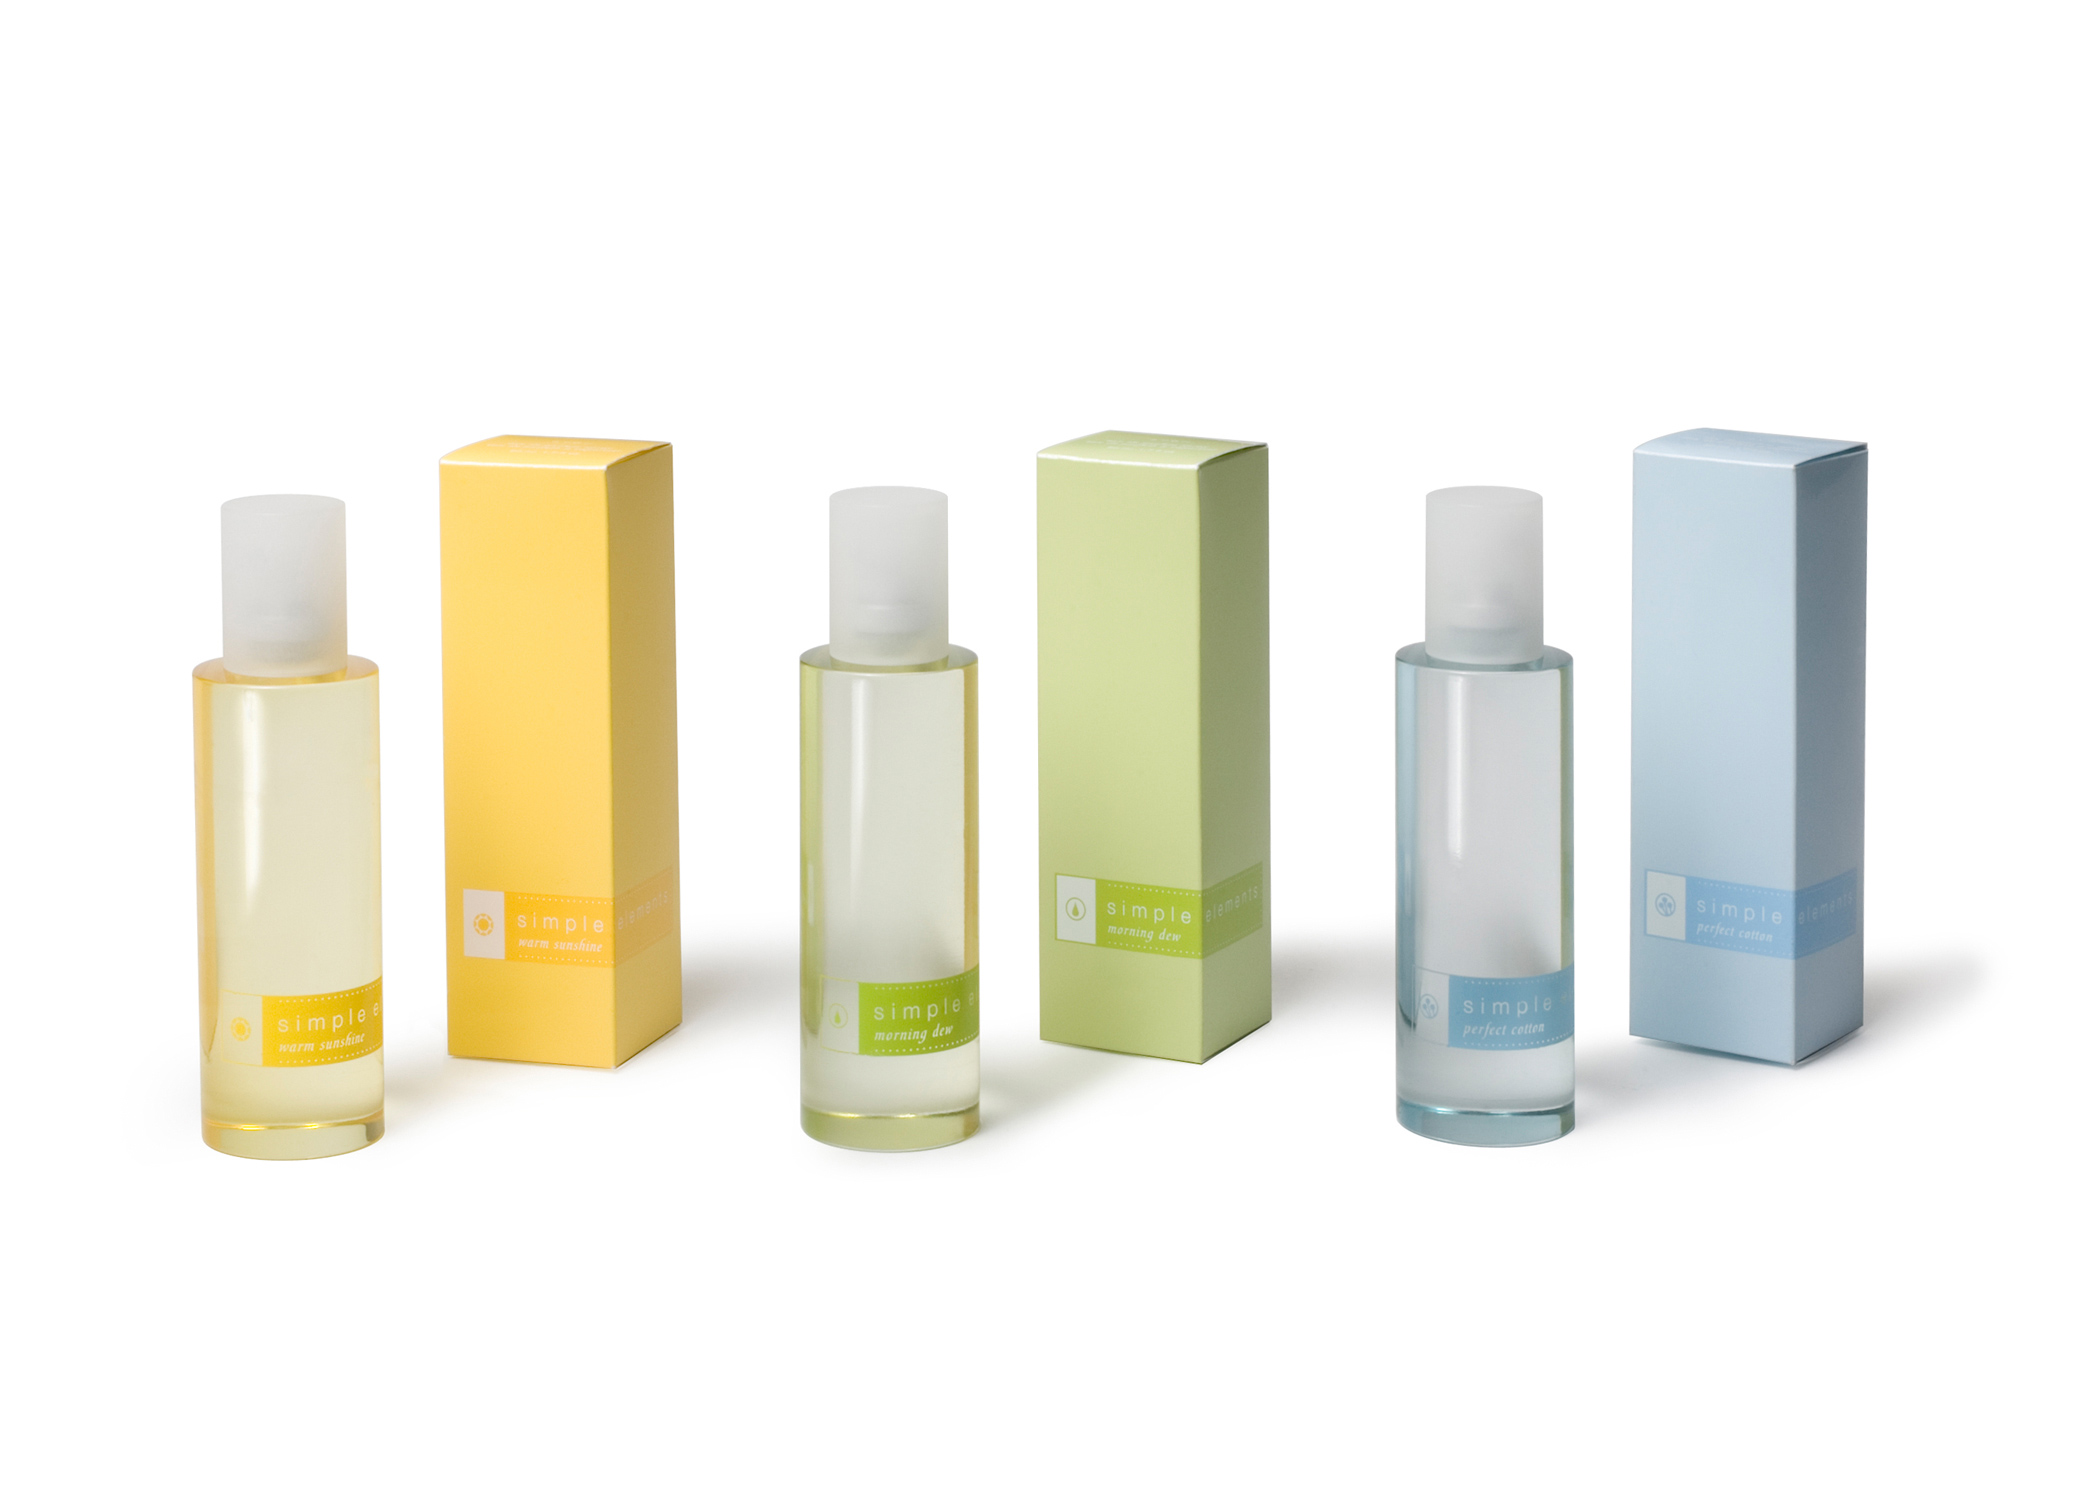 Avon Simple Elements perfume cosmetic packaging design with transparent bottles and pastel yellow, green and blue labels.